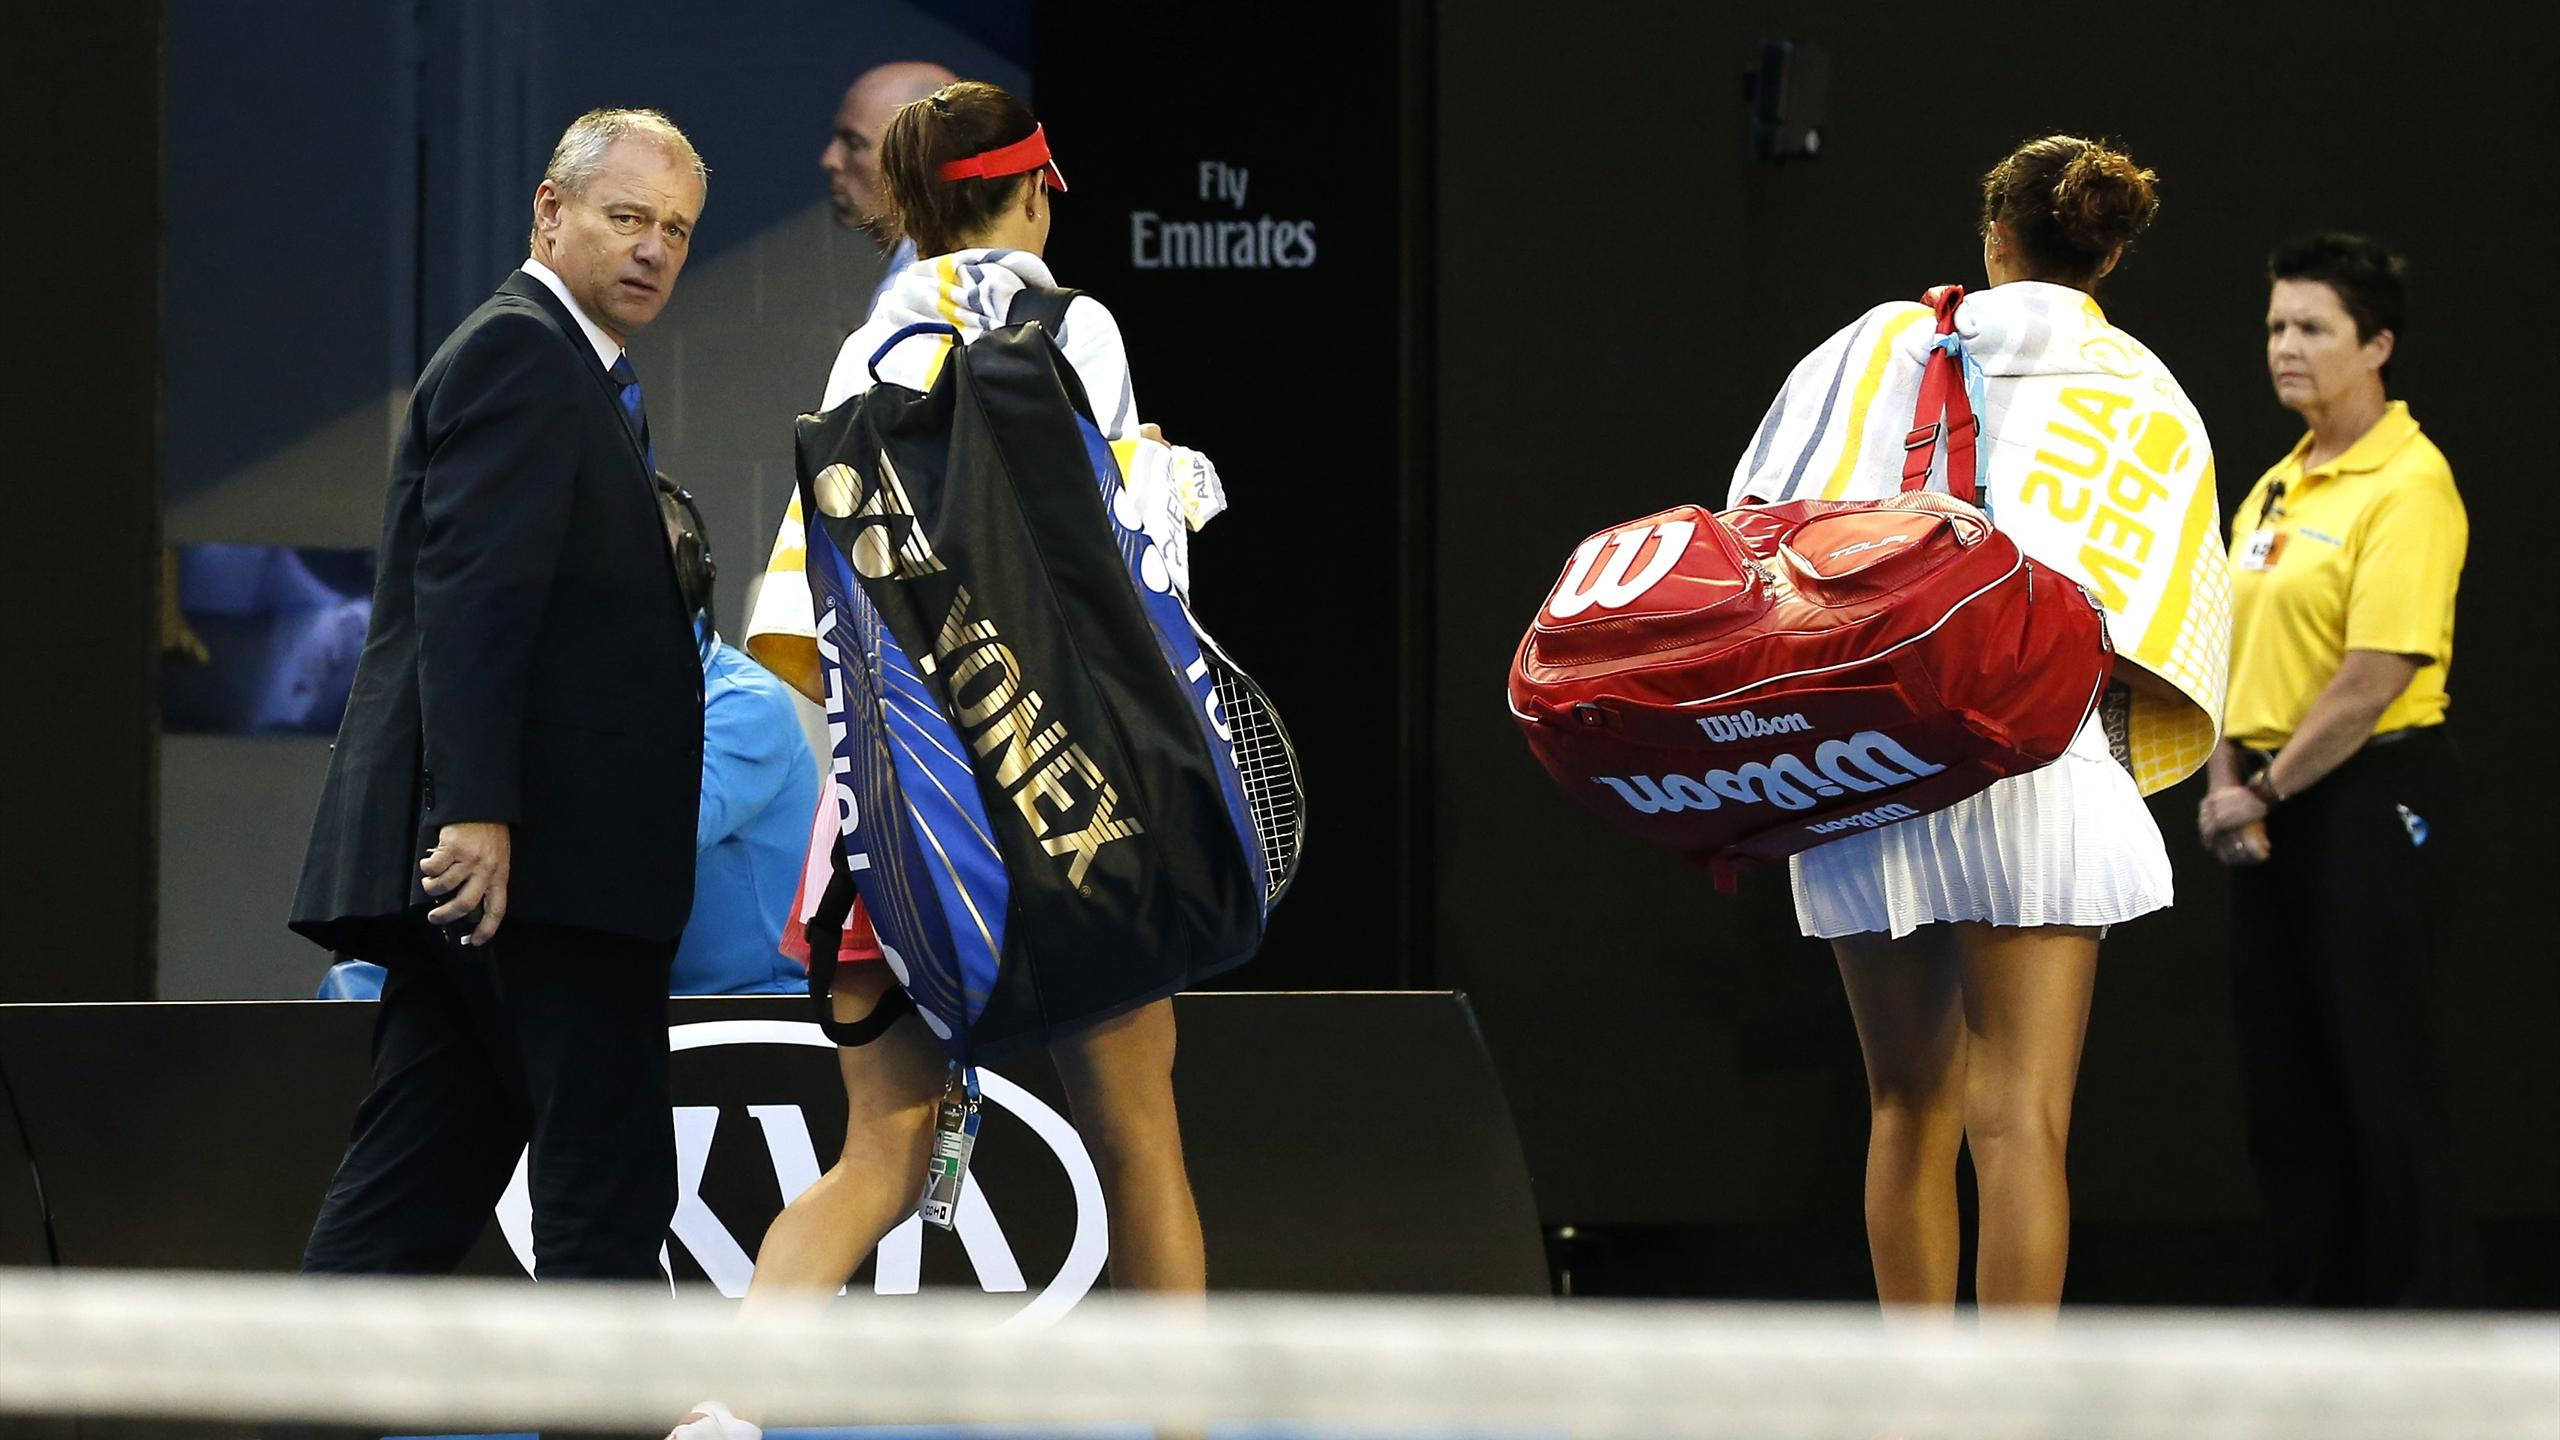 Serbia's Ana Ivanovic (C) and Madison Keys of the U.S. leave with their bags as play in their third round match is suspended due to a spectator requiring medical attention, at the Australian Open